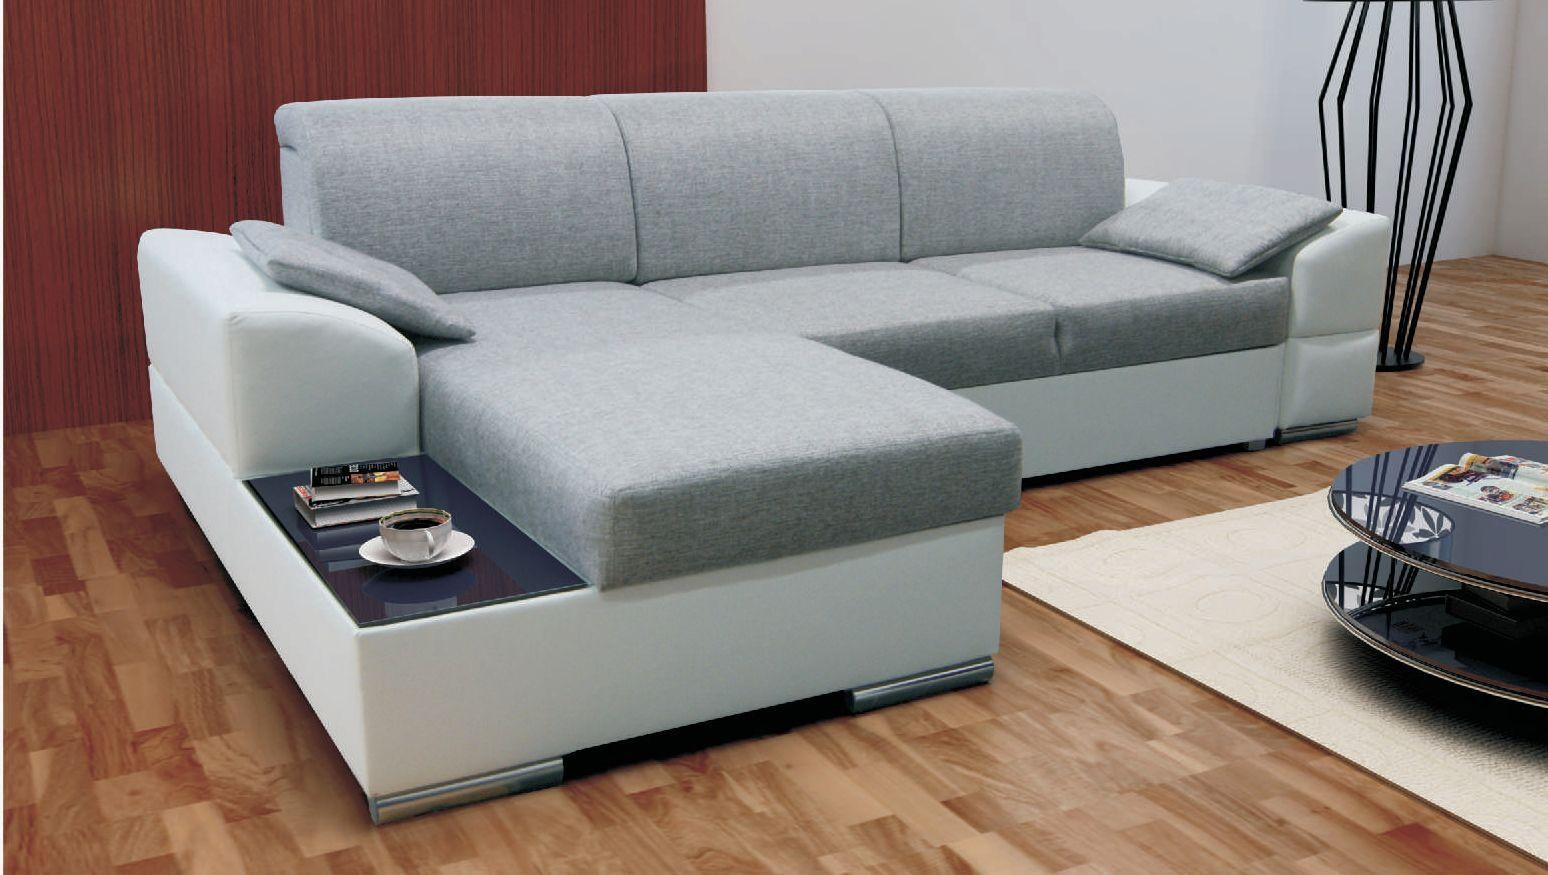 20 Ideas Of Ikea Corner Sofa Bed With Storage Sofa Ideas